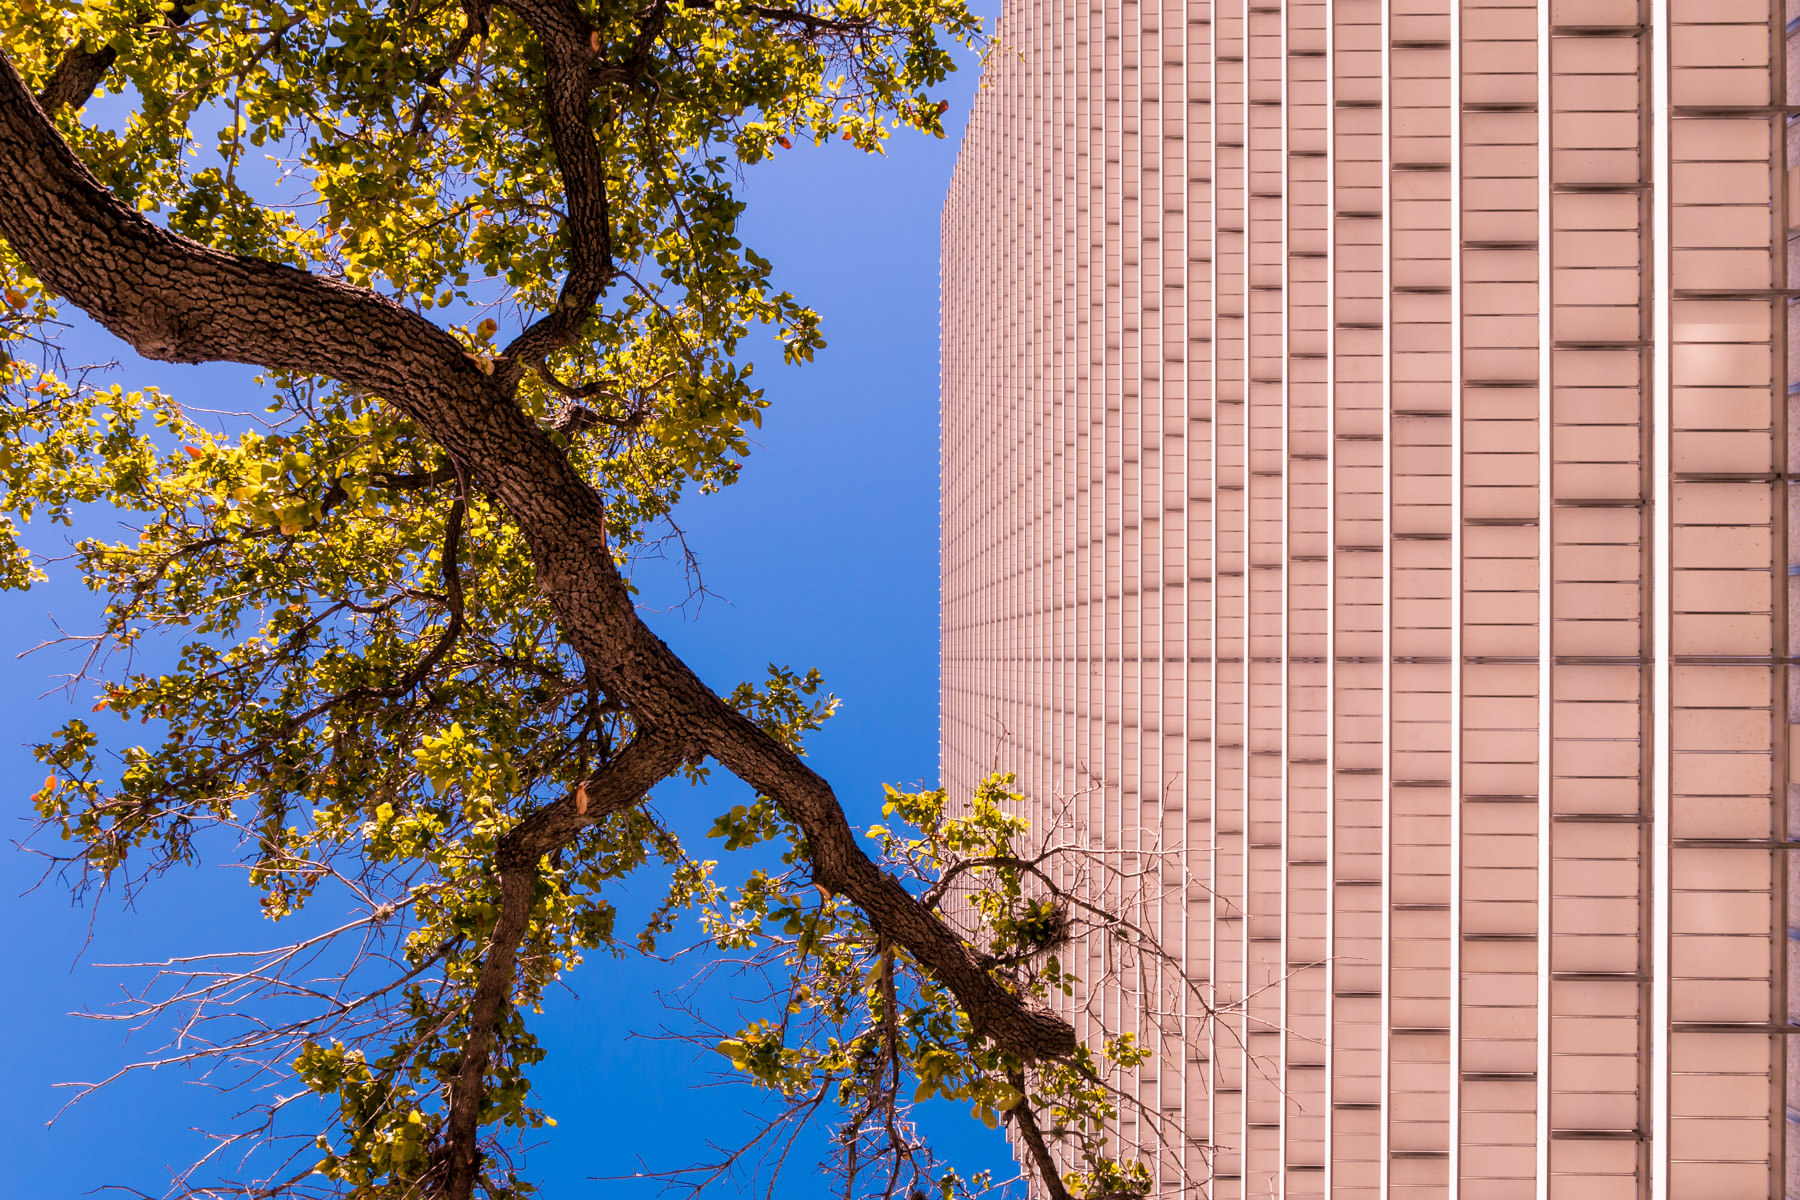 A tree branch appears to reach towards Downtown Houston's ExxonMobil Building.